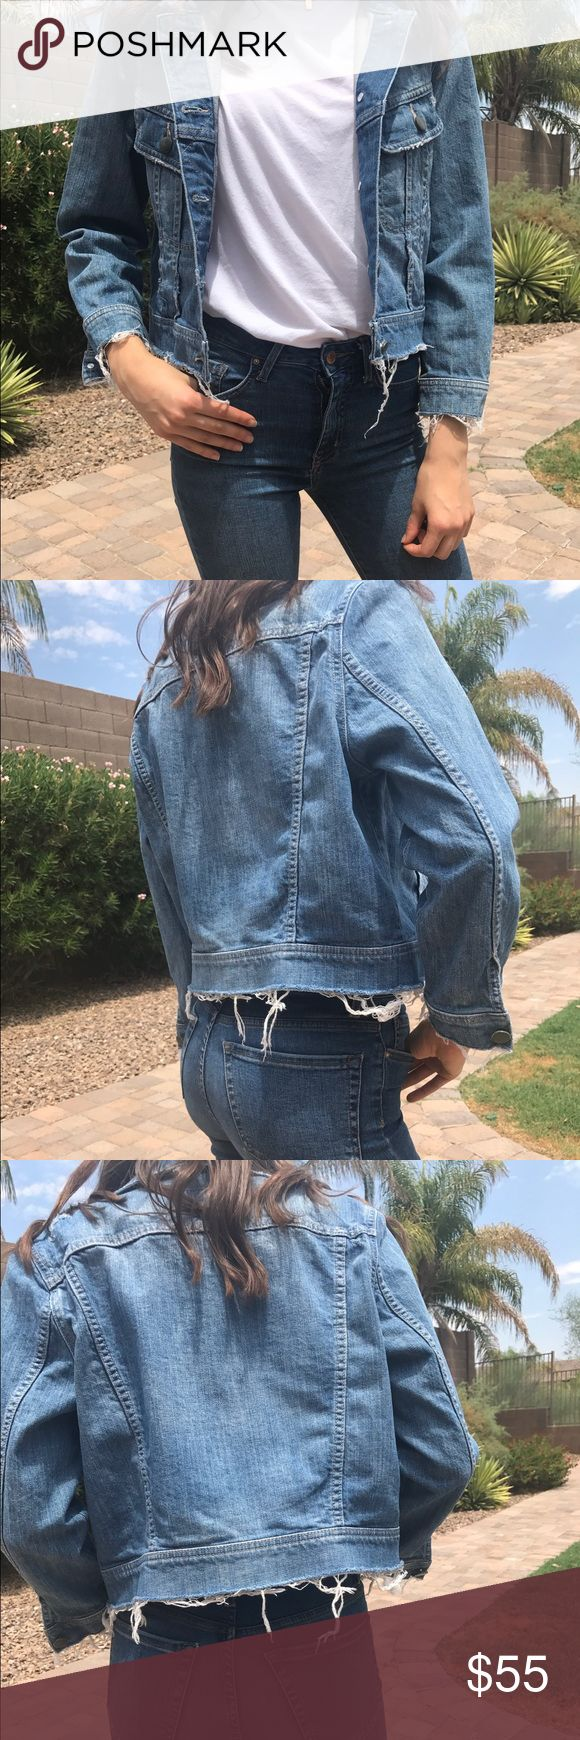 Distressed crop Jean jacket Faded distressed Jean jacket. Light weight. 3/4 length sleeves. Cropped fit. Runs small hinge Jackets & Coats Jean Jackets